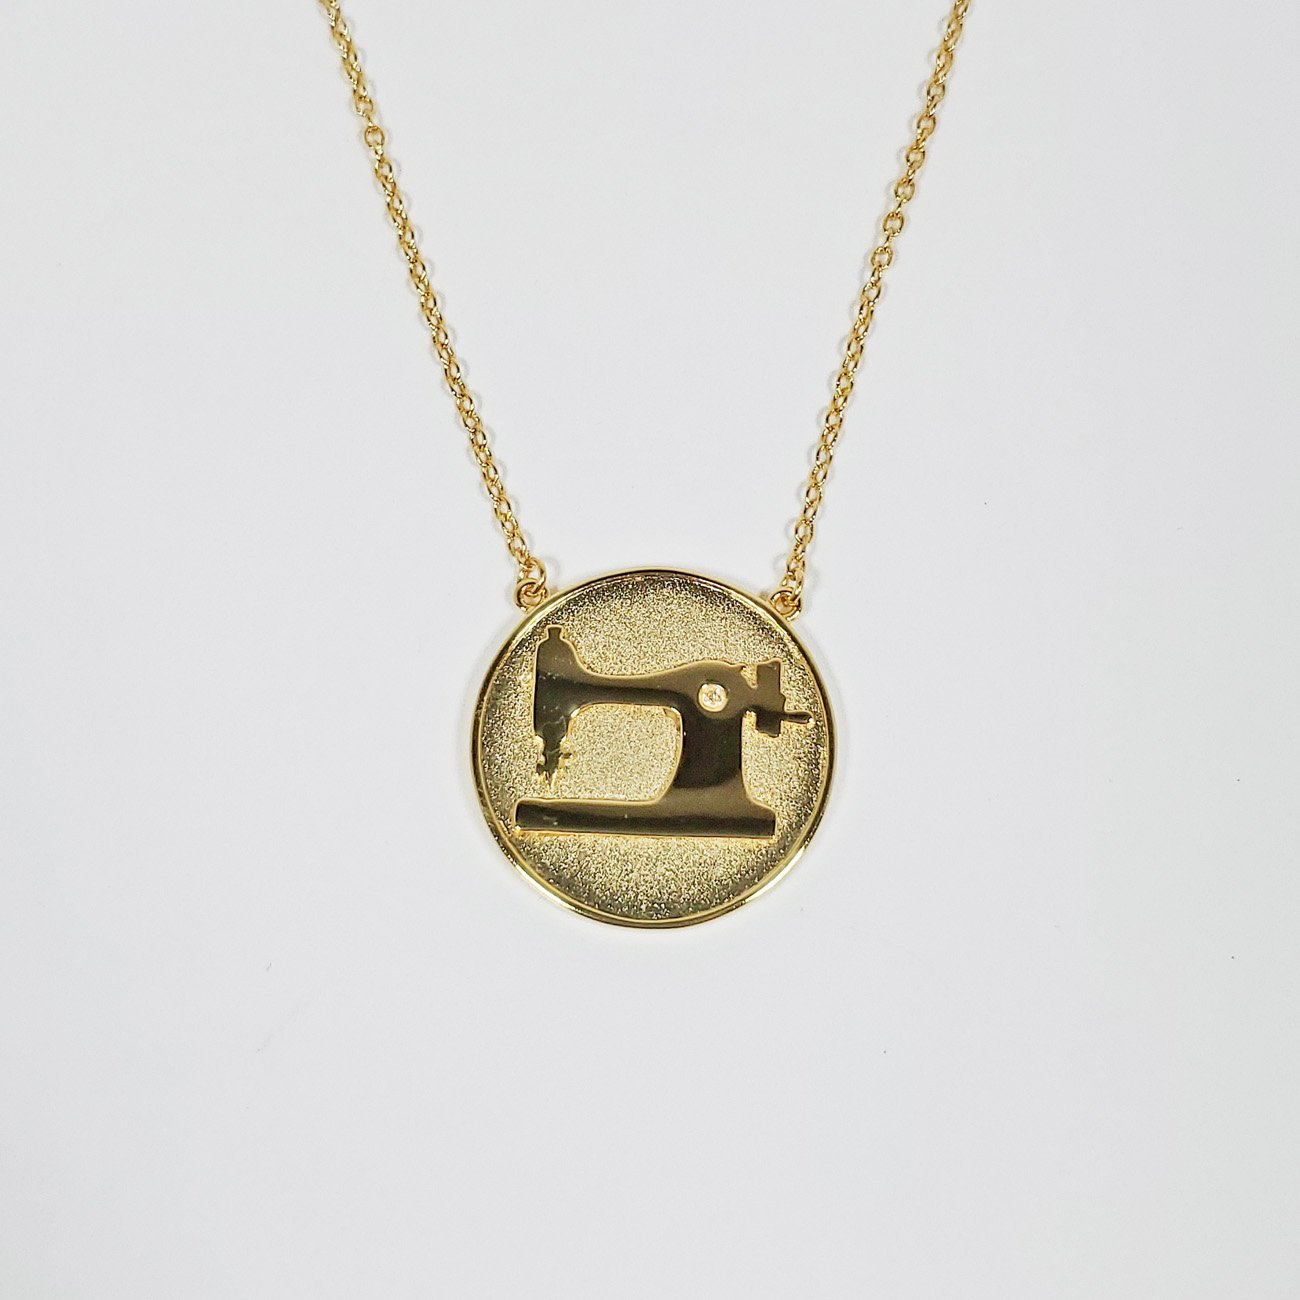 Sewing Machine Coin Necklace Gold